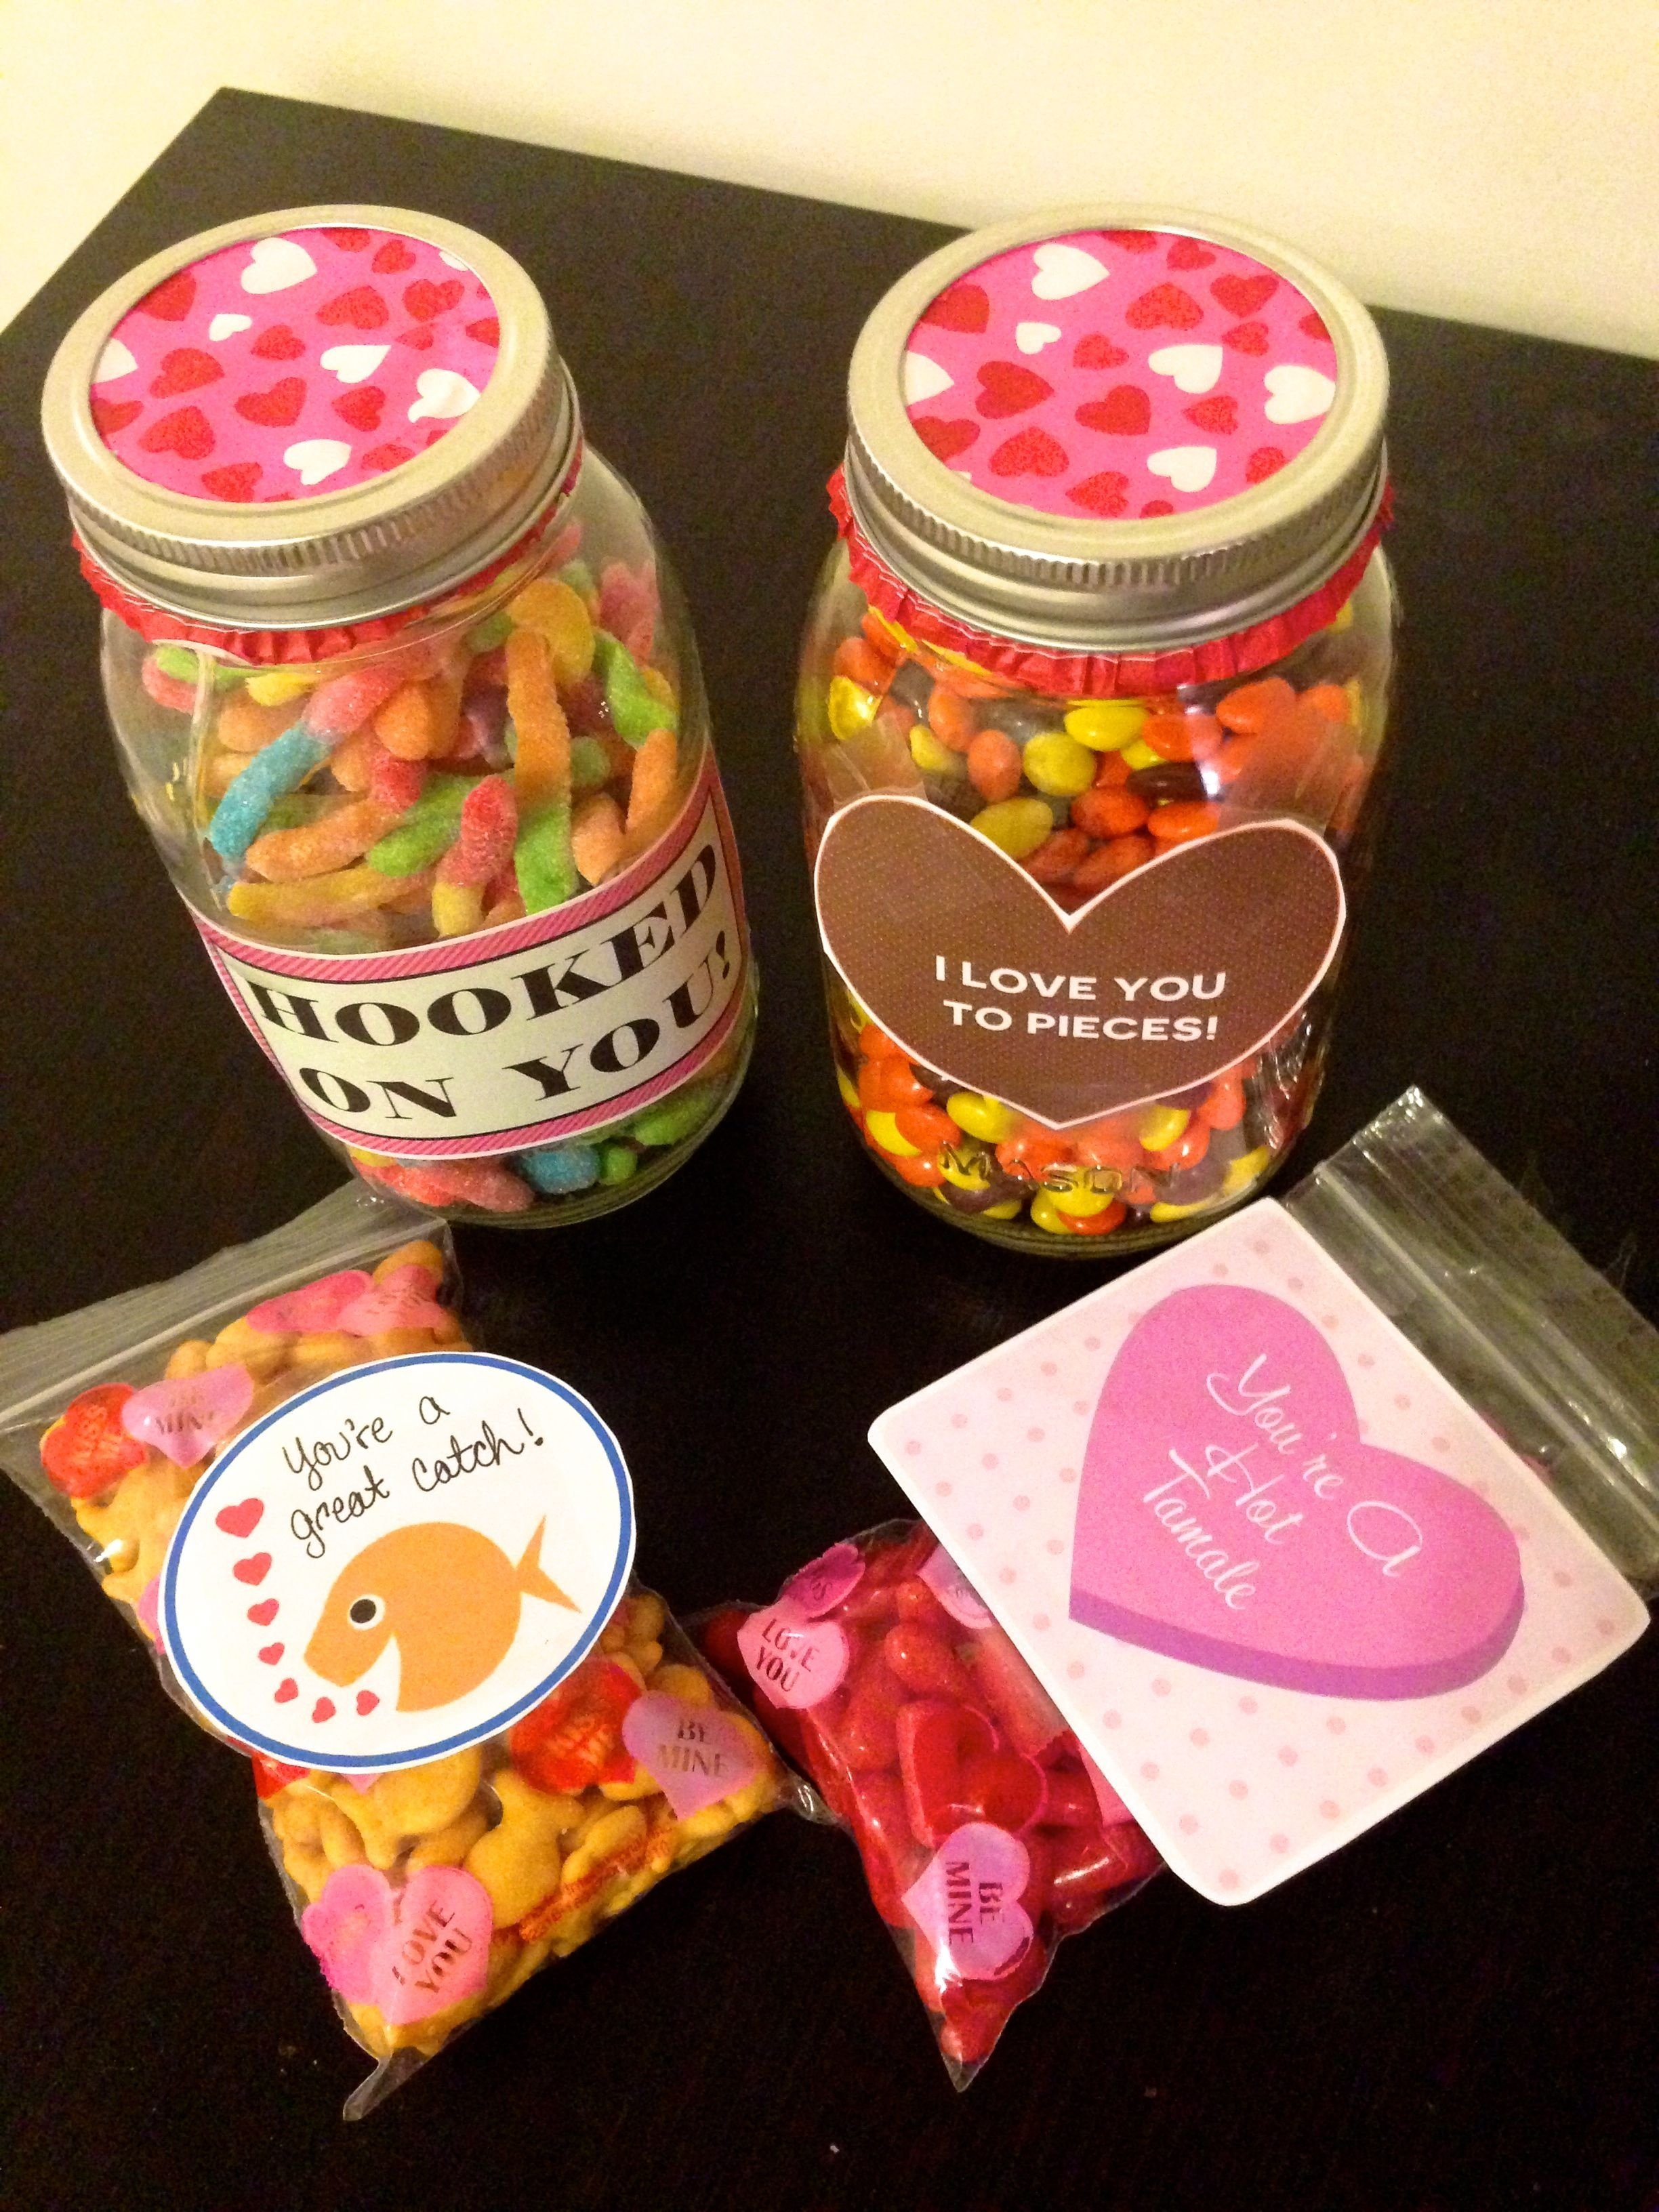 10 Perfect Valentines Gifts For Him Ideas romantic gift idea for him on a budget budgeting honey and romantic 3 2021